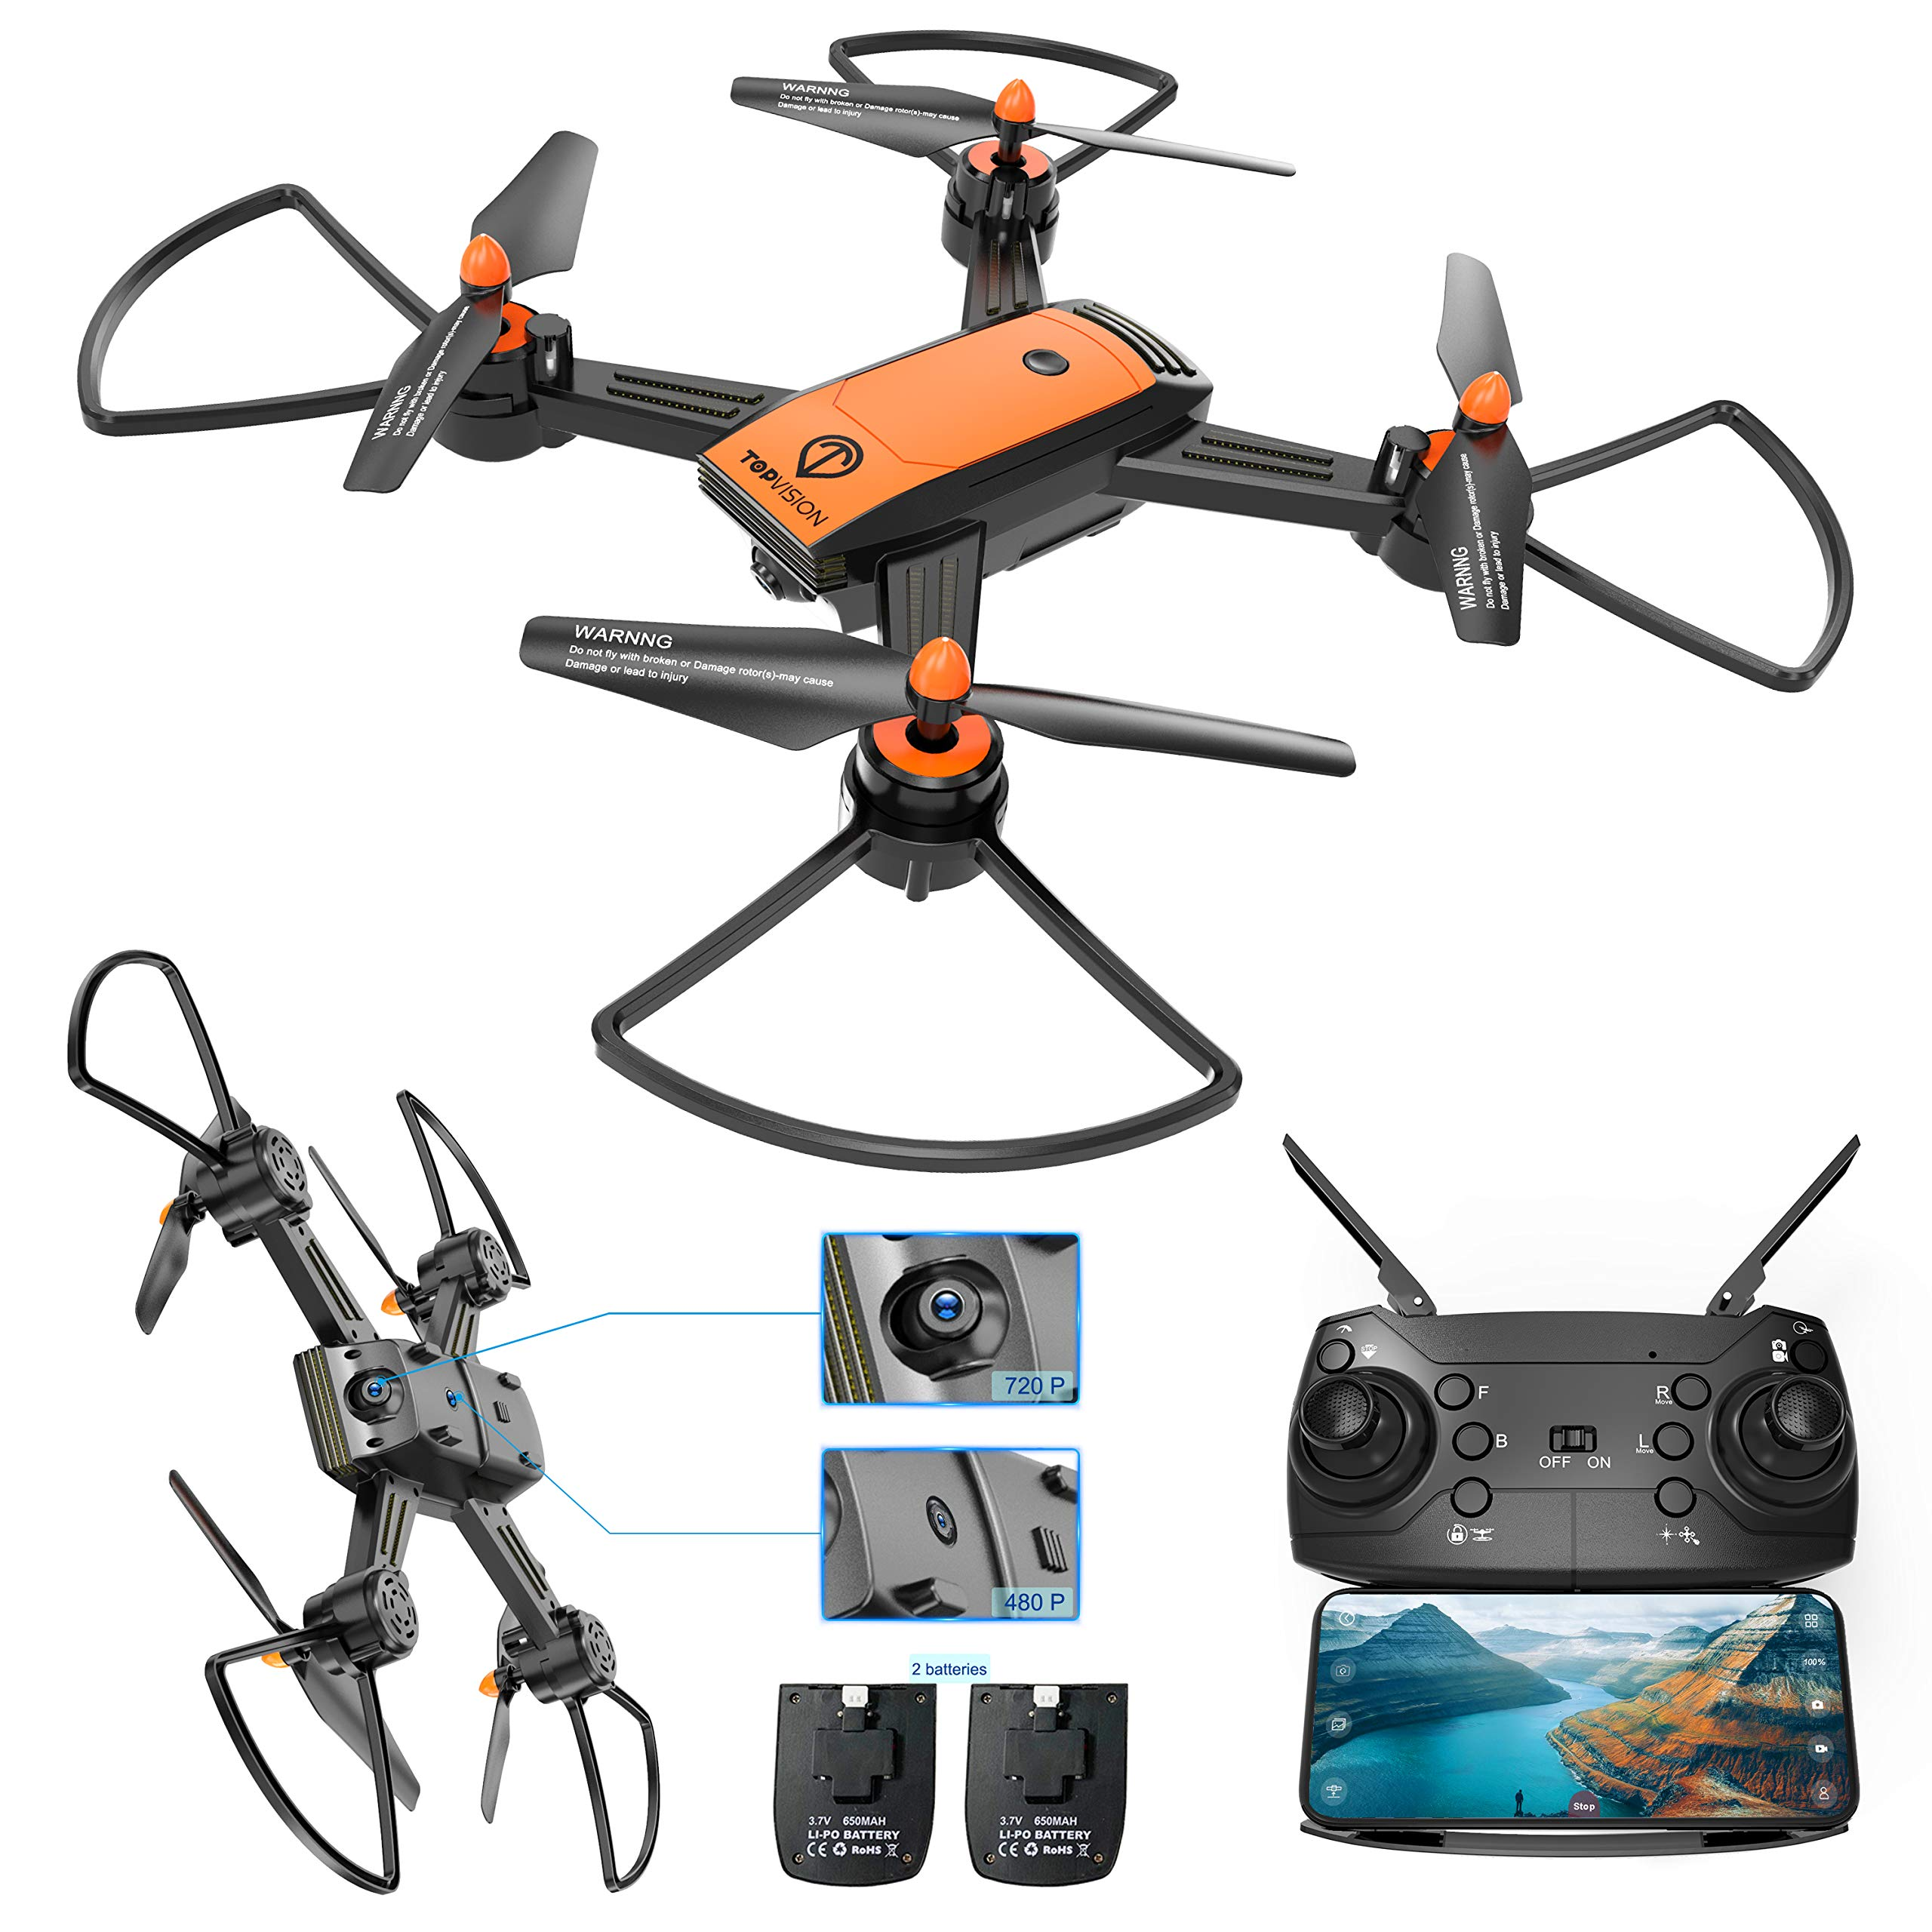 Drone with Camera, TOPVISION WiFi FPV 720P HD Camera & 480P Bottom Camera Wide-Angle Live Video RC Quadcopter with Altitude Hold One Key Take Off/Landing, Compatible w/VR Headset